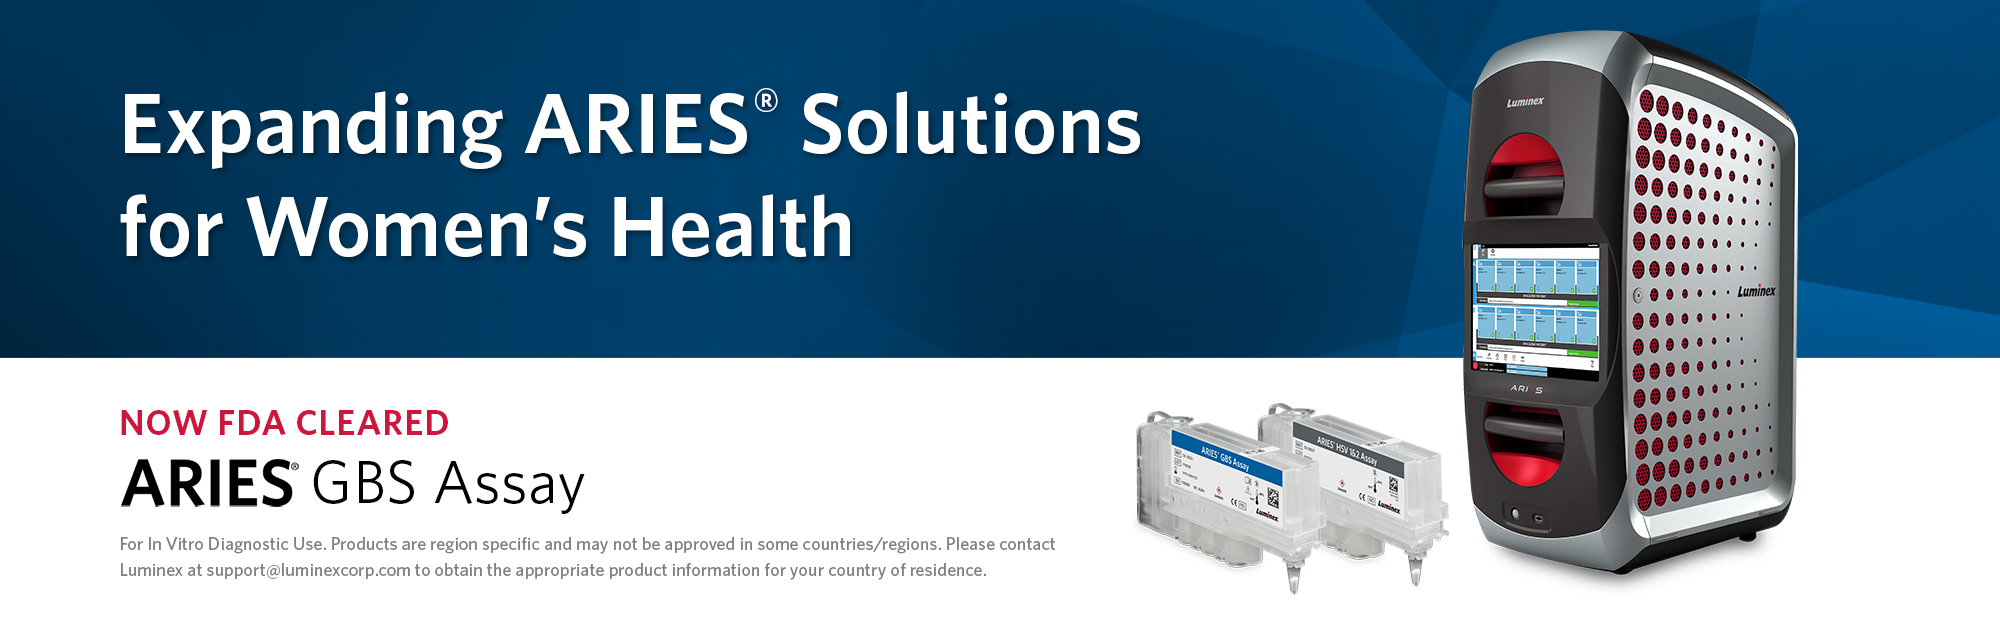 Expanding ARIES® Solutions for Women's Health - ARIES® GBS Assay is Now FDA Cleared